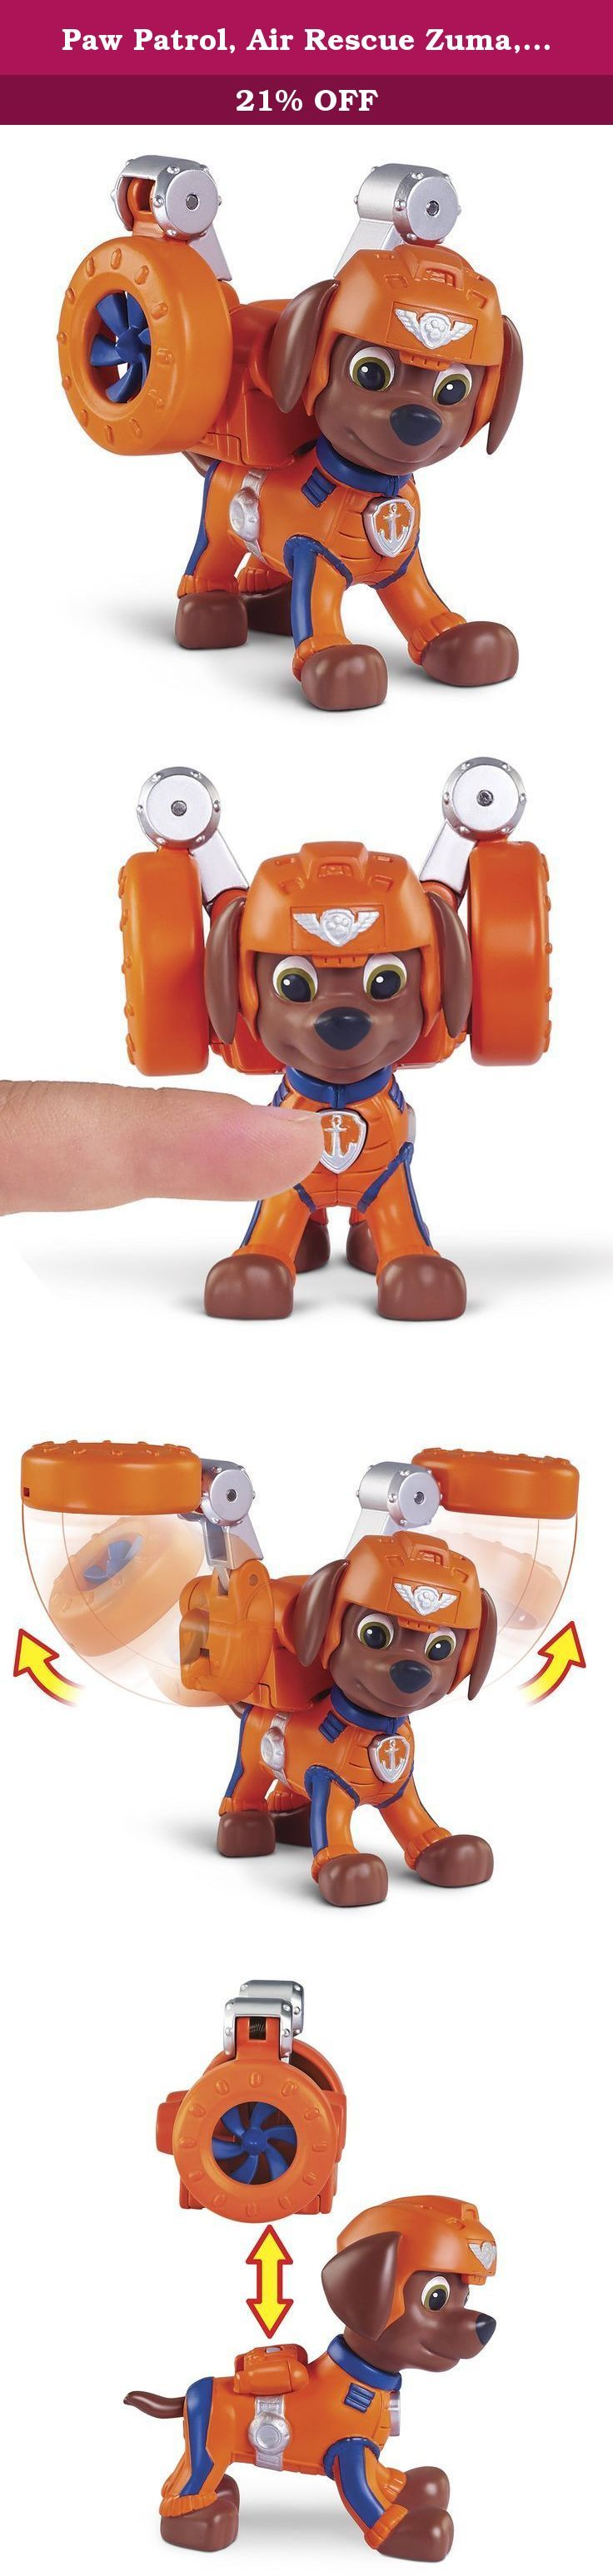 Paw Patrol, Air Rescue Zuma, Pup Pack & Badge. Paw Patrol is on a roll! Air Rescue Zuma is ready for a high-flying rescue with his transforming Pup Pack! Just press the button to transform Zuma's Pup Pack into wings! When the job is done and it's time to pack up, the wings easily transform back into the Pup Pack. You can join the Paw Patrol too with an included Air Rescue Badge made just for you! Now you can wear it on all of your Paw Patrol adventures. Need help from Paw Patrol gang?...